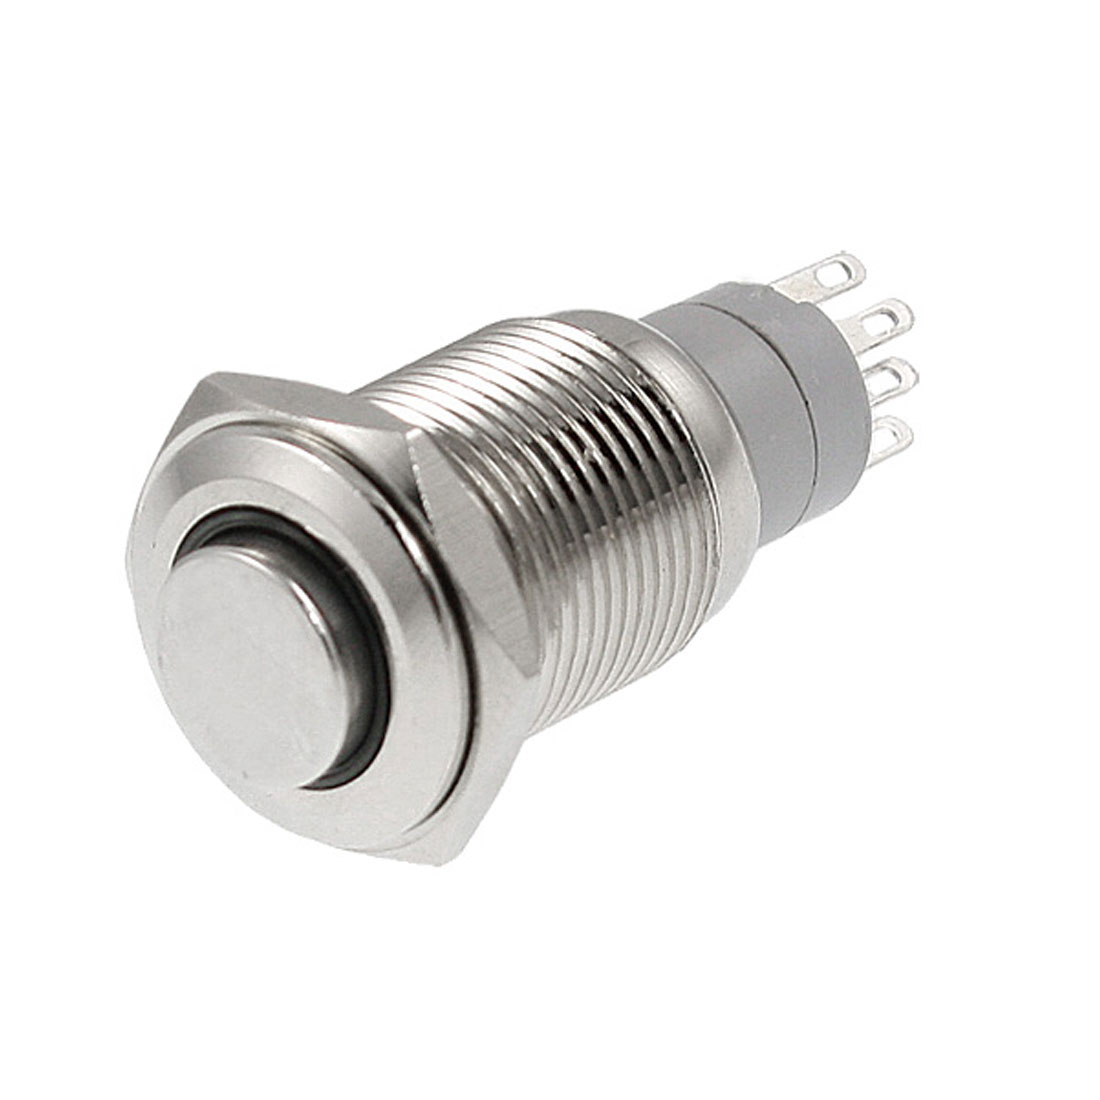 Angel Eye White Led 16mm 12V stainless Steel Round Momentary Push Button Switch